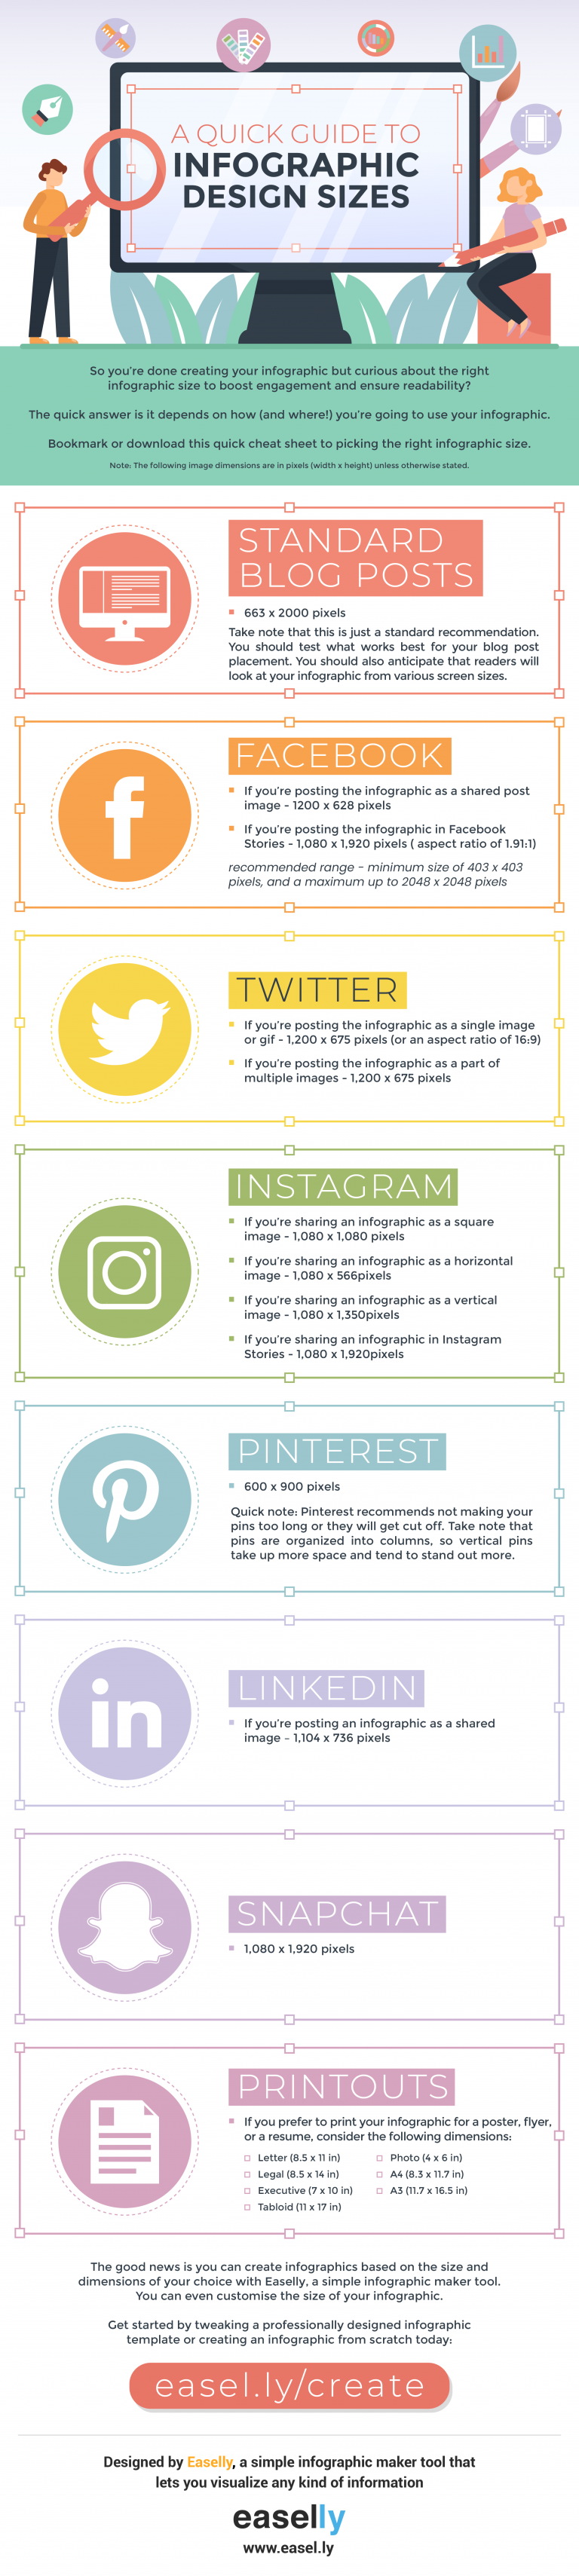 infographic size cheat sheet